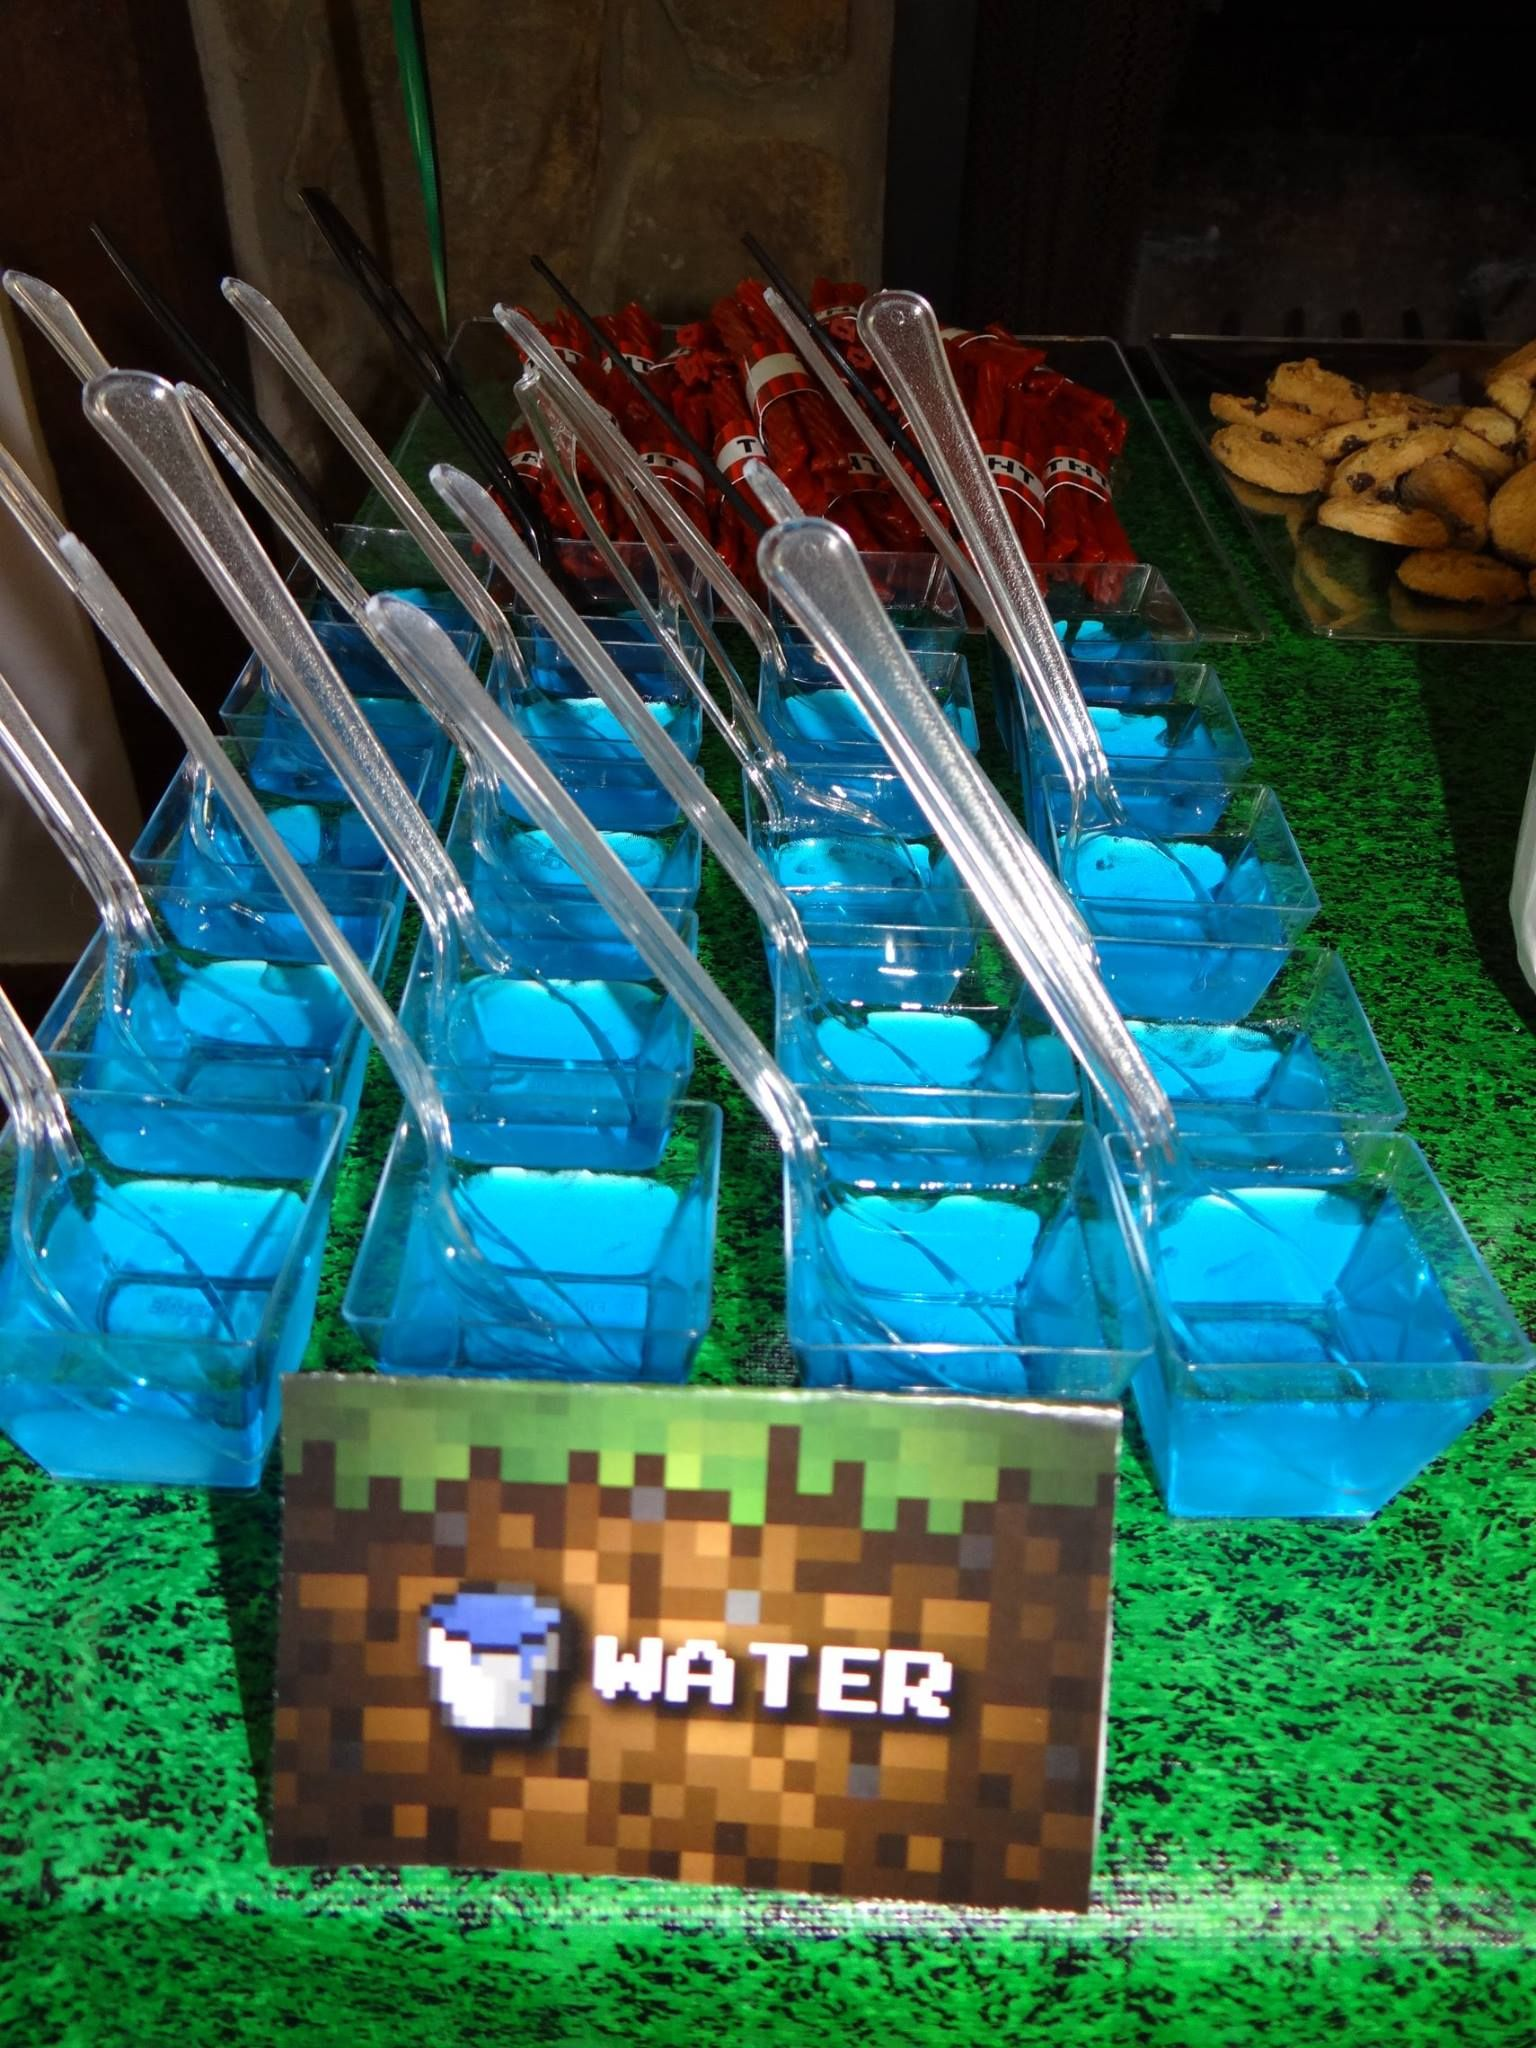 Blue Raspberry Jello in square cups from Party City as